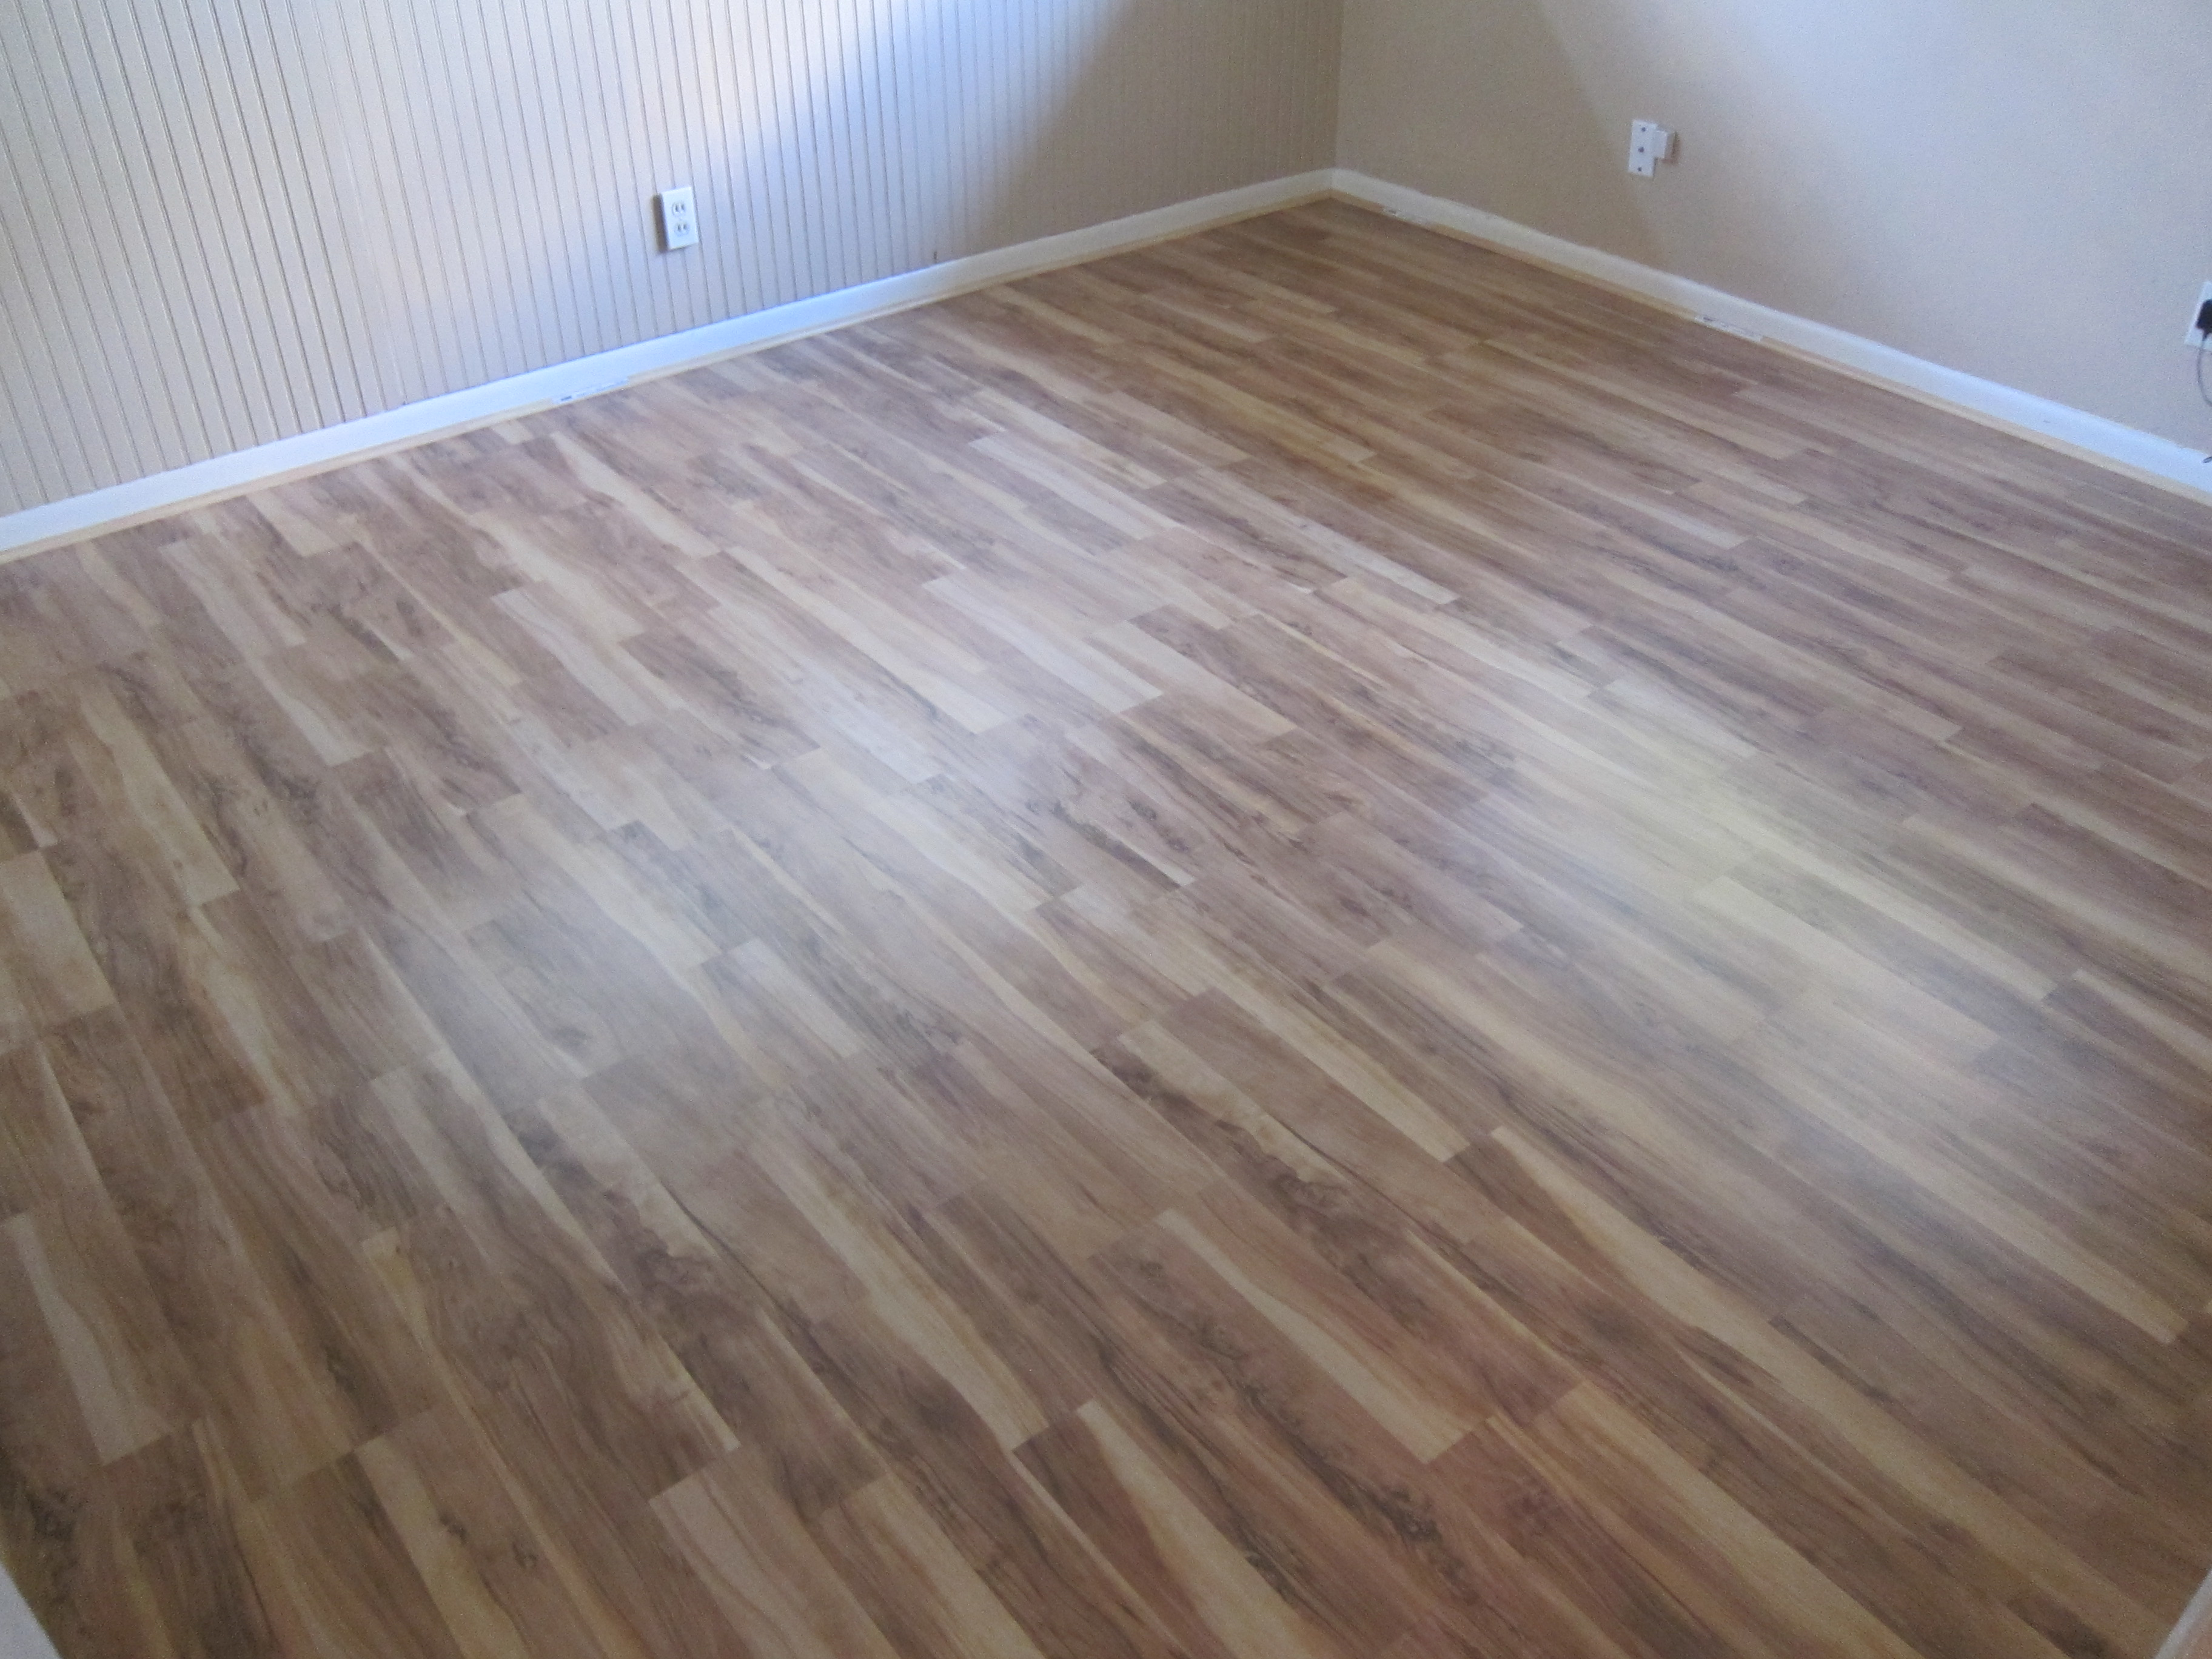 Glueless Laminate Flooring Install Prep Steps